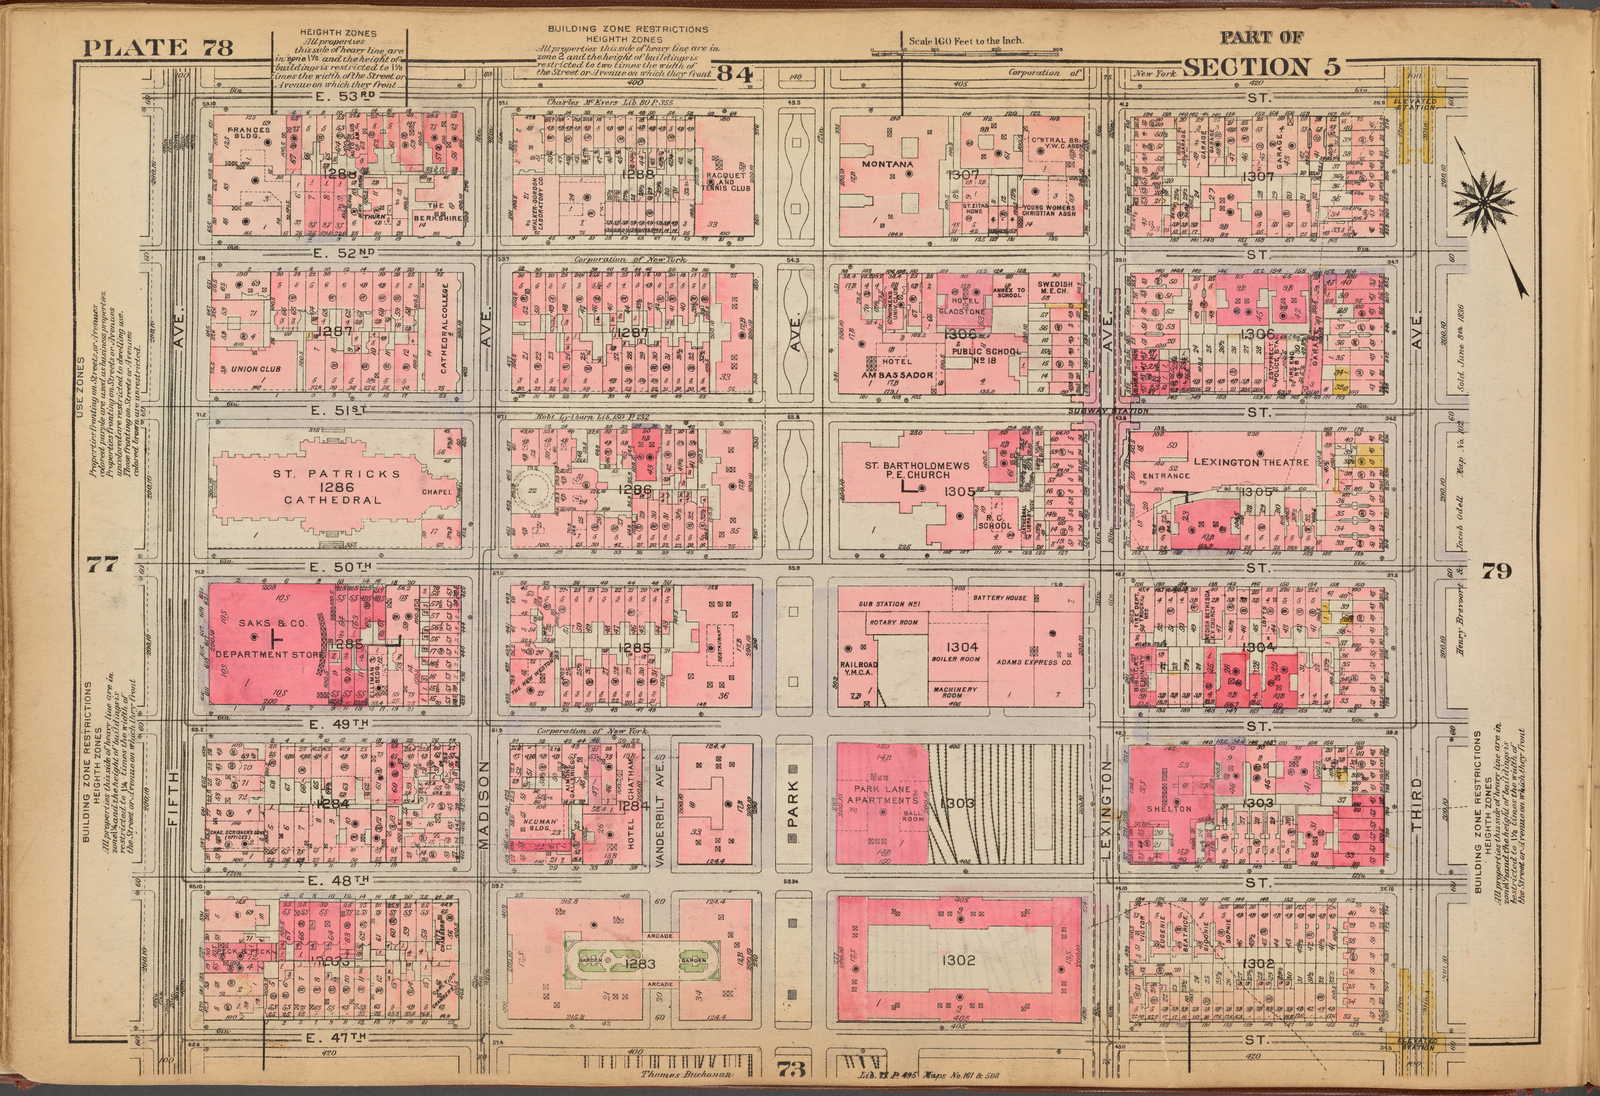 1921 Gw Bromley Atlas Of Nyc Plate 78